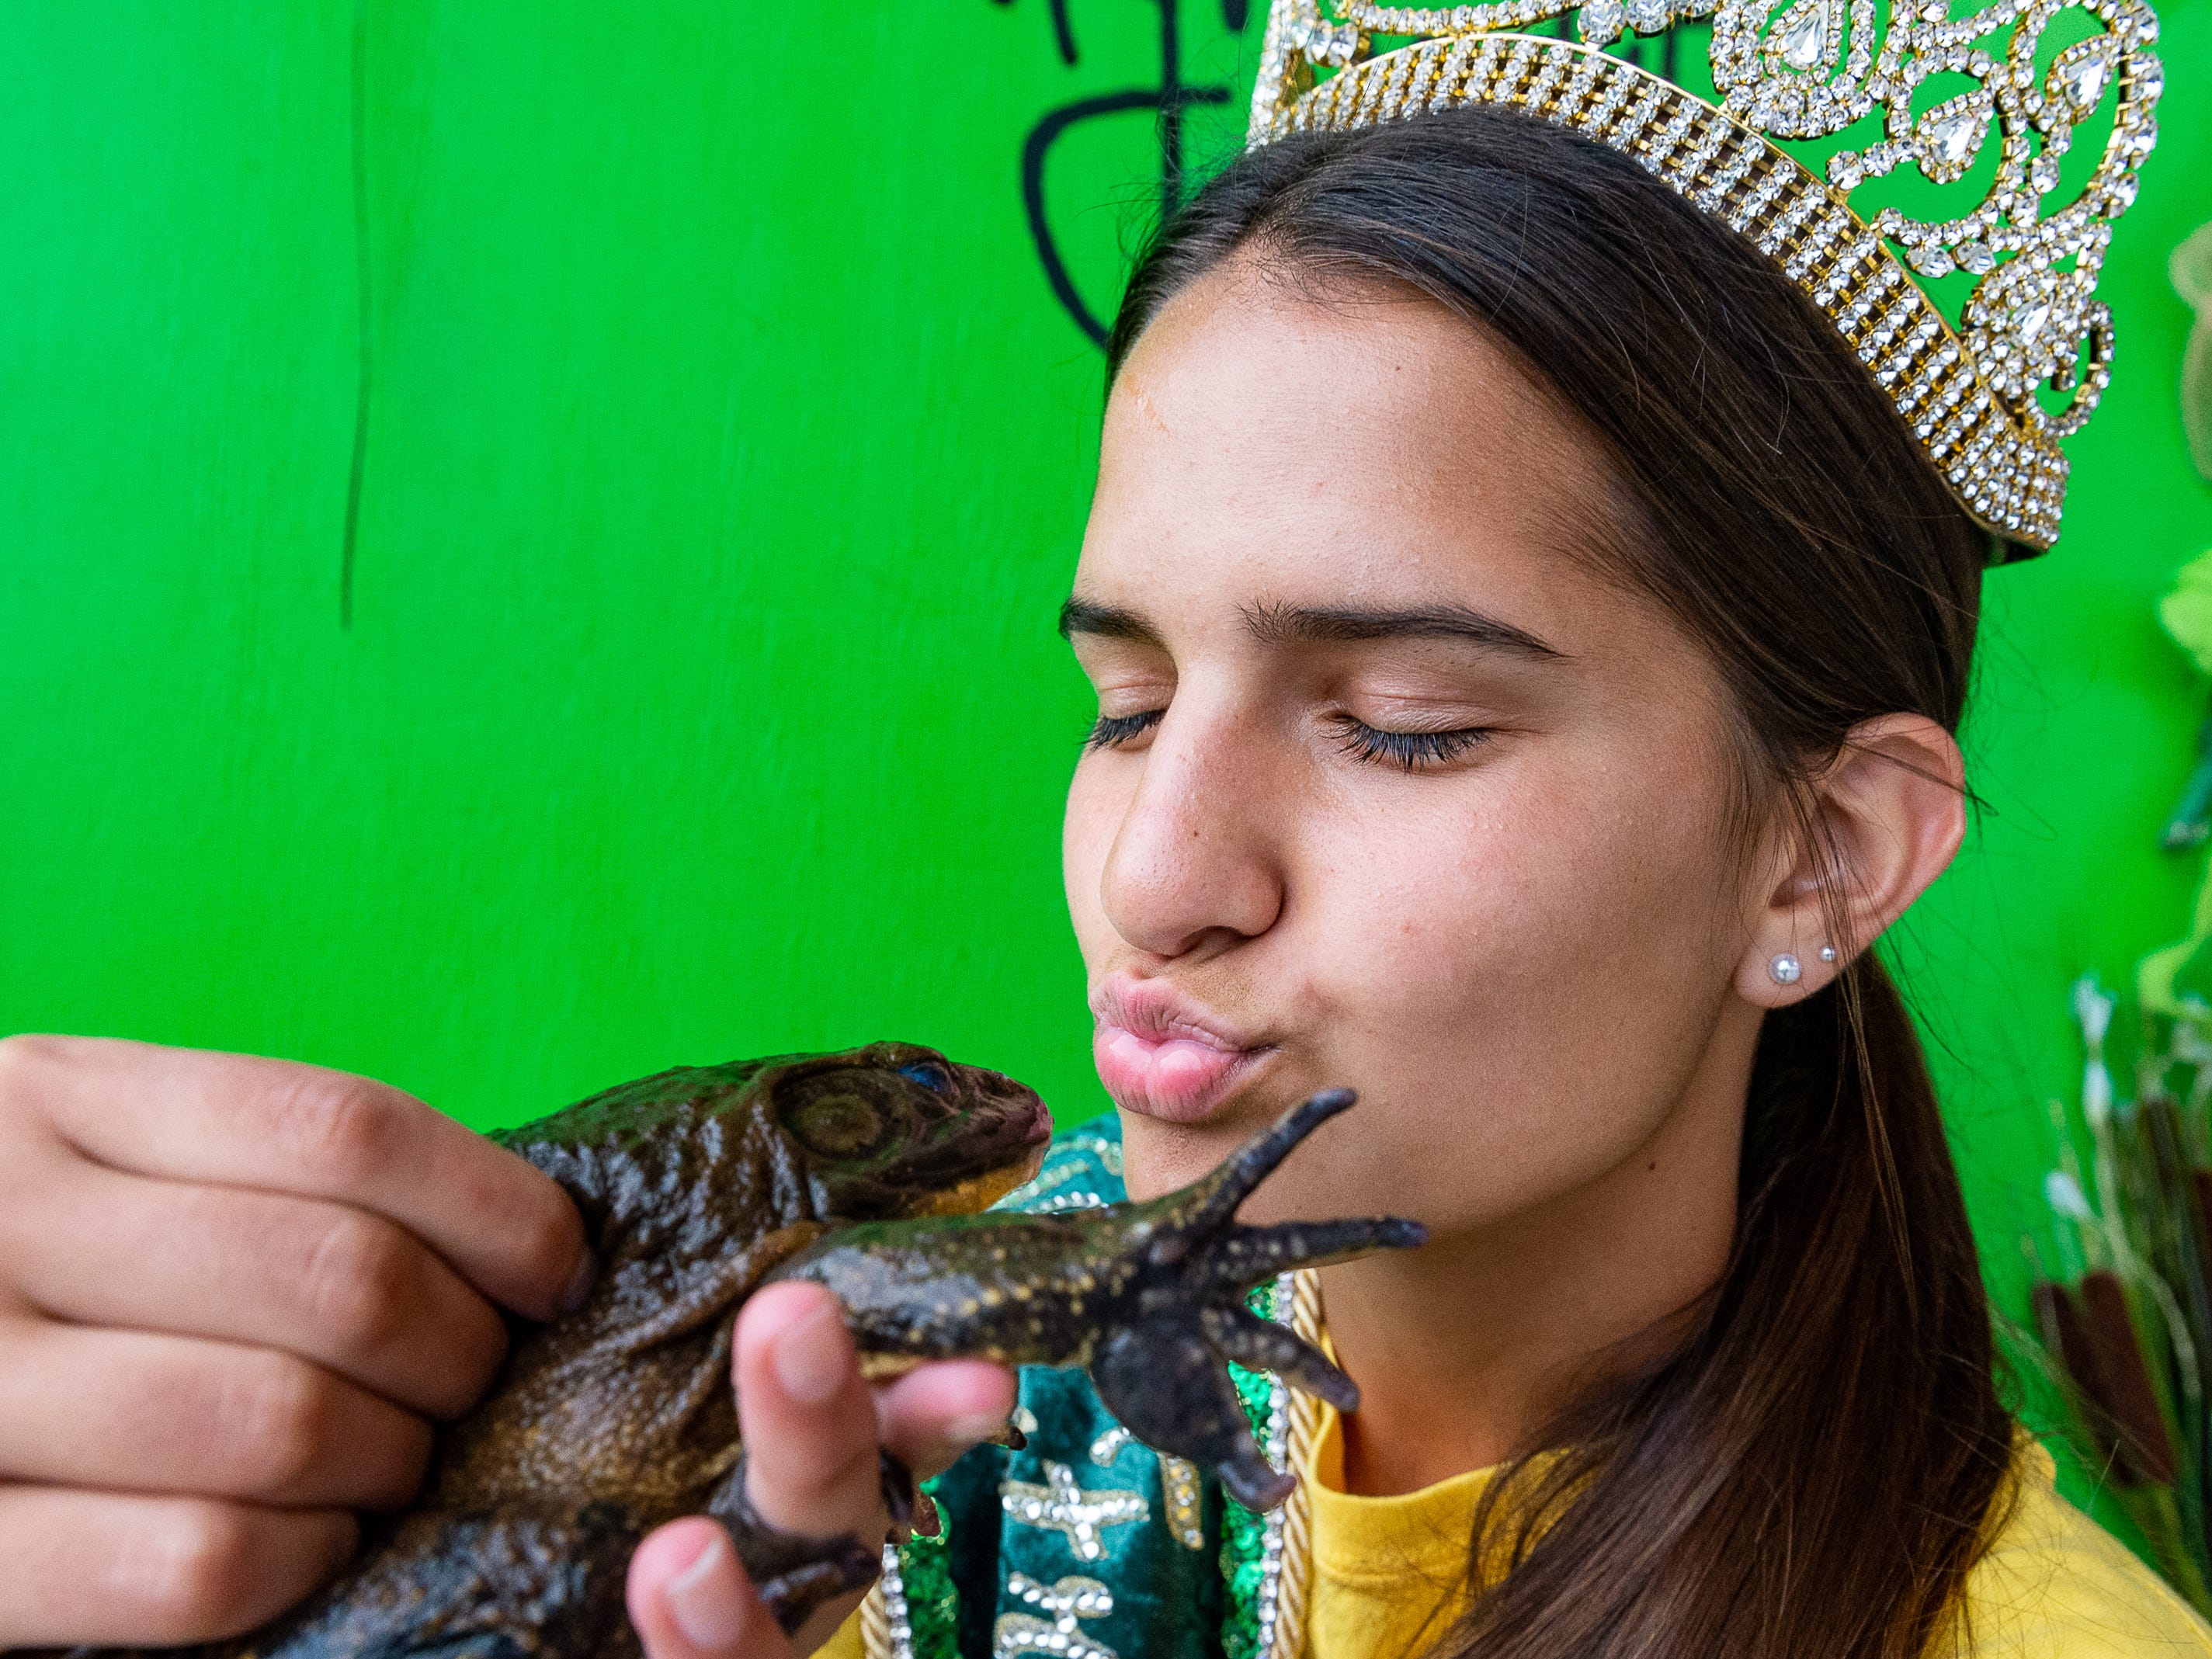 Teen Frog Festival Queen Janci Aube' at The Rayne Frog Festival features music, food and events. Friday, May 10, 2019.